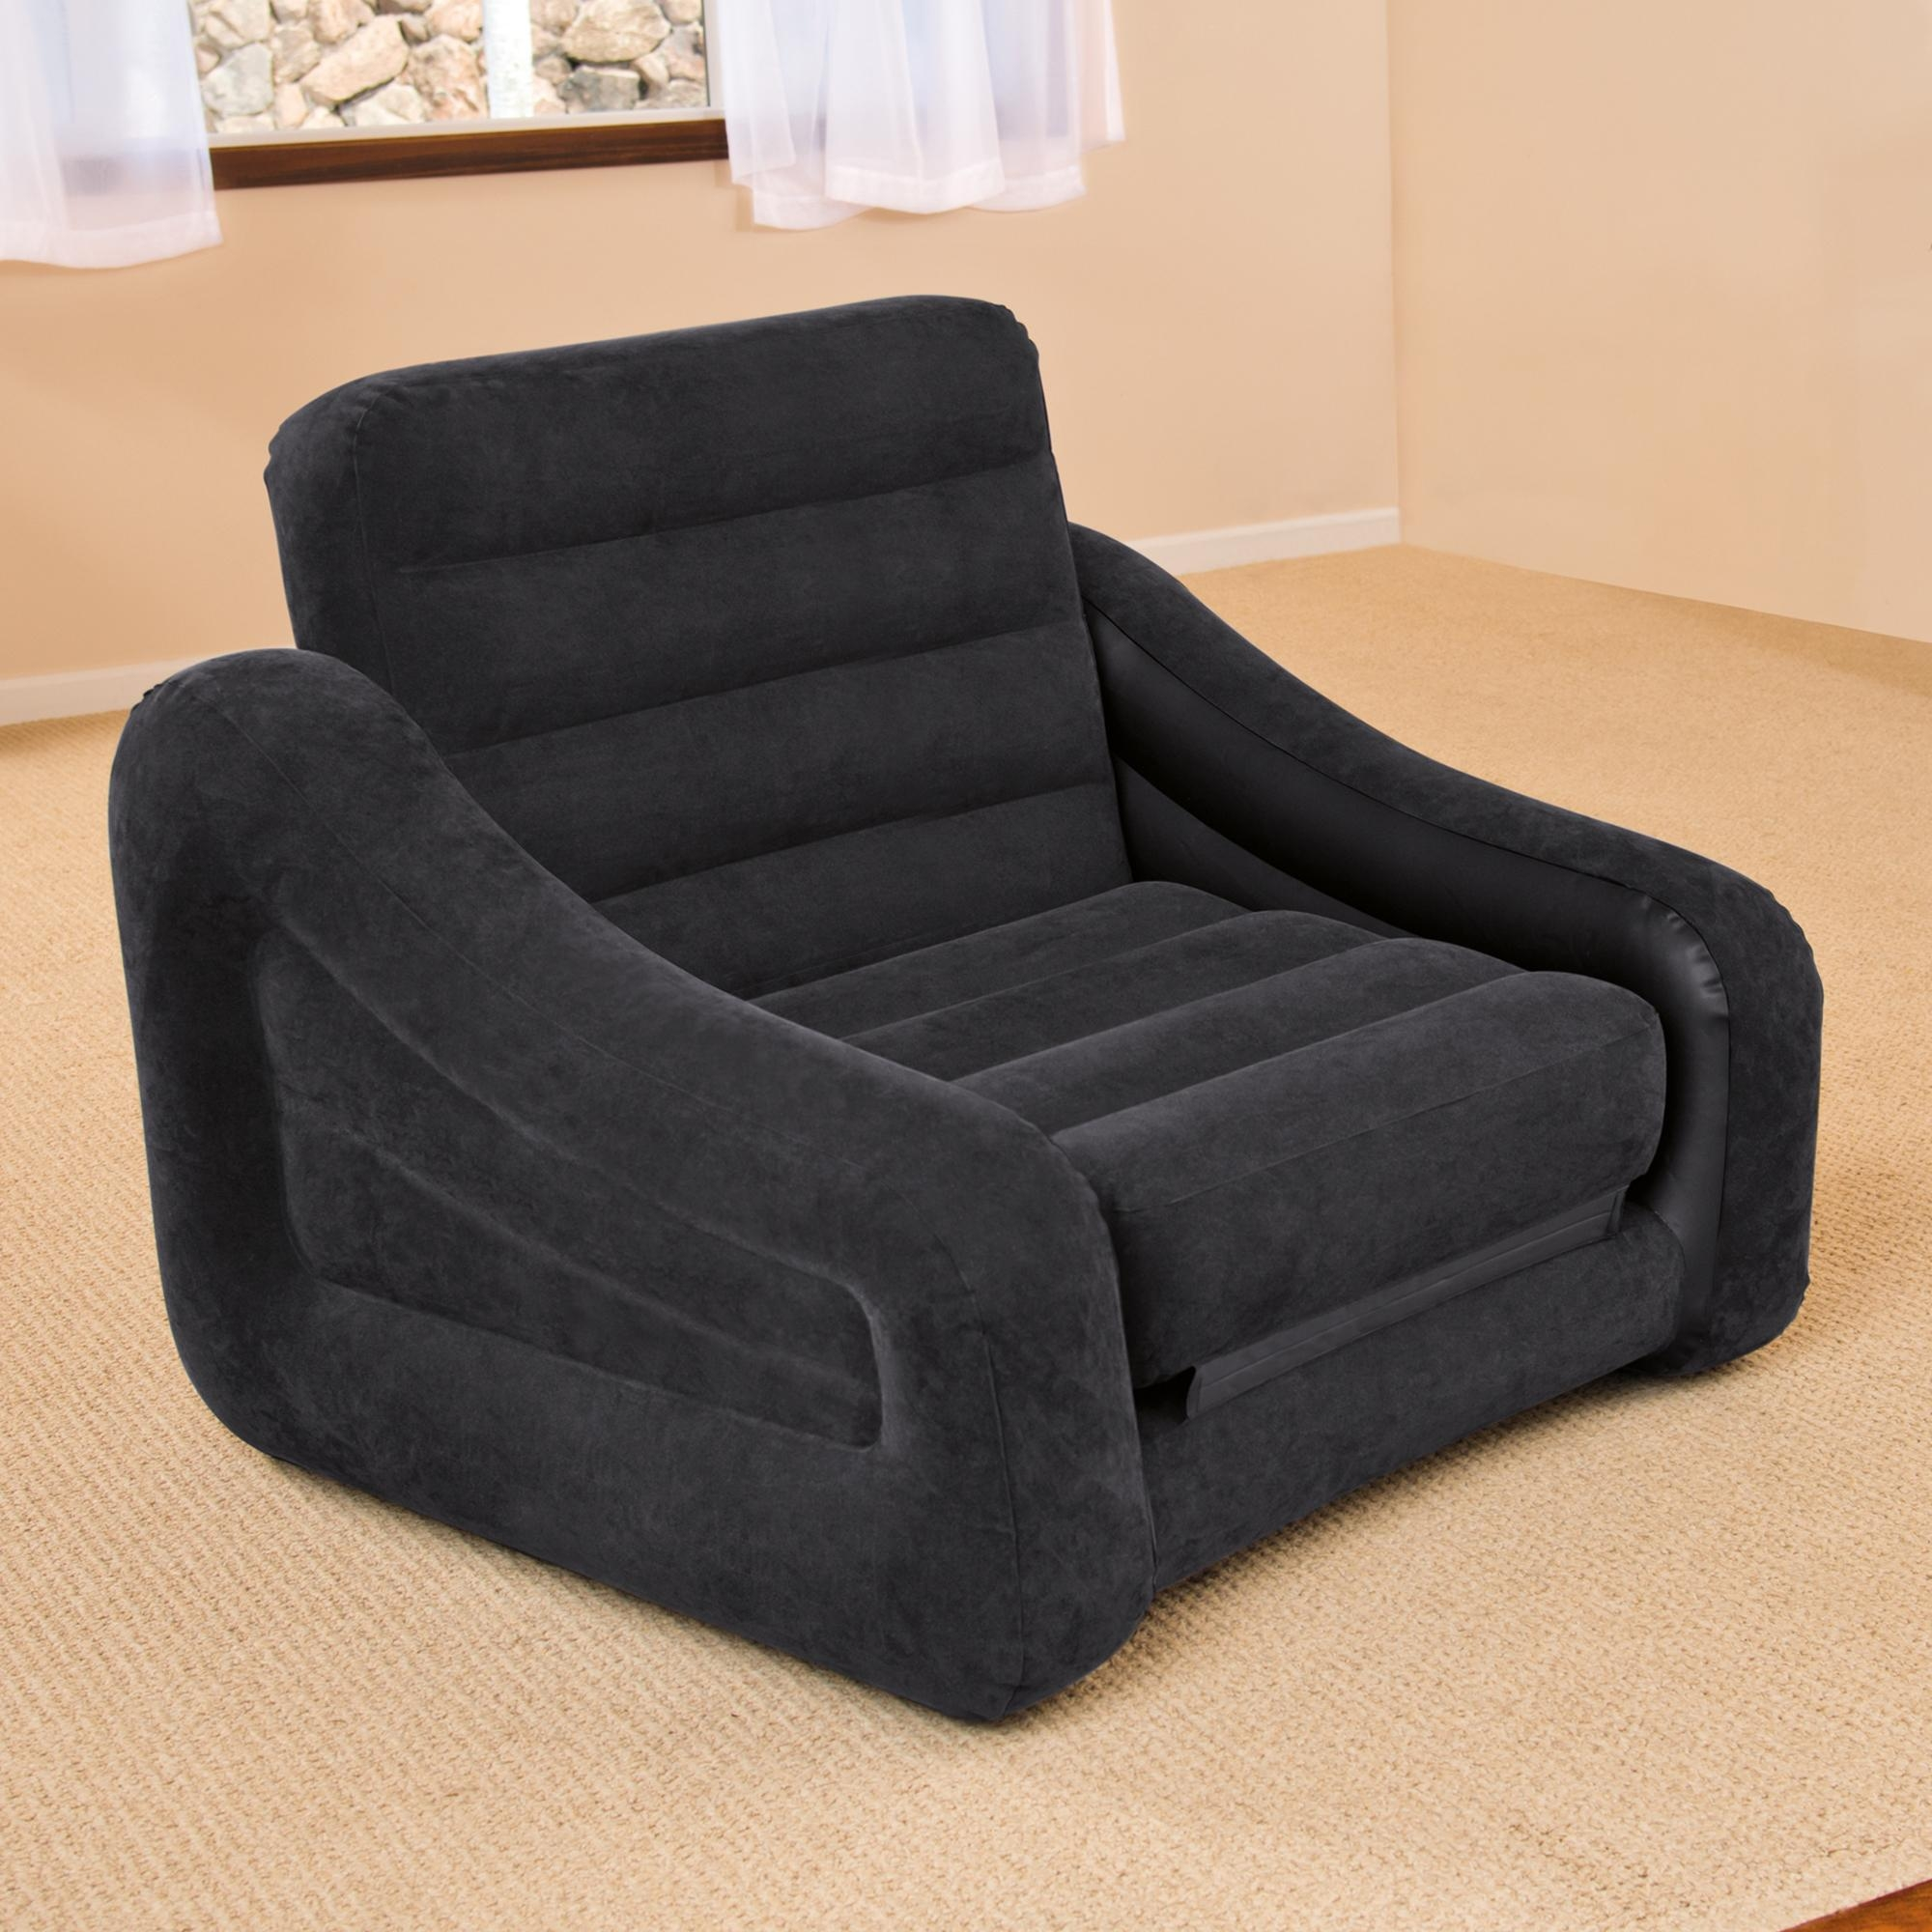 Intex Inflatable Pull Out Chair And Twin Bed Mattress Sleeper Pertaining To Intex Sleep Sofas (Image 8 of 20)